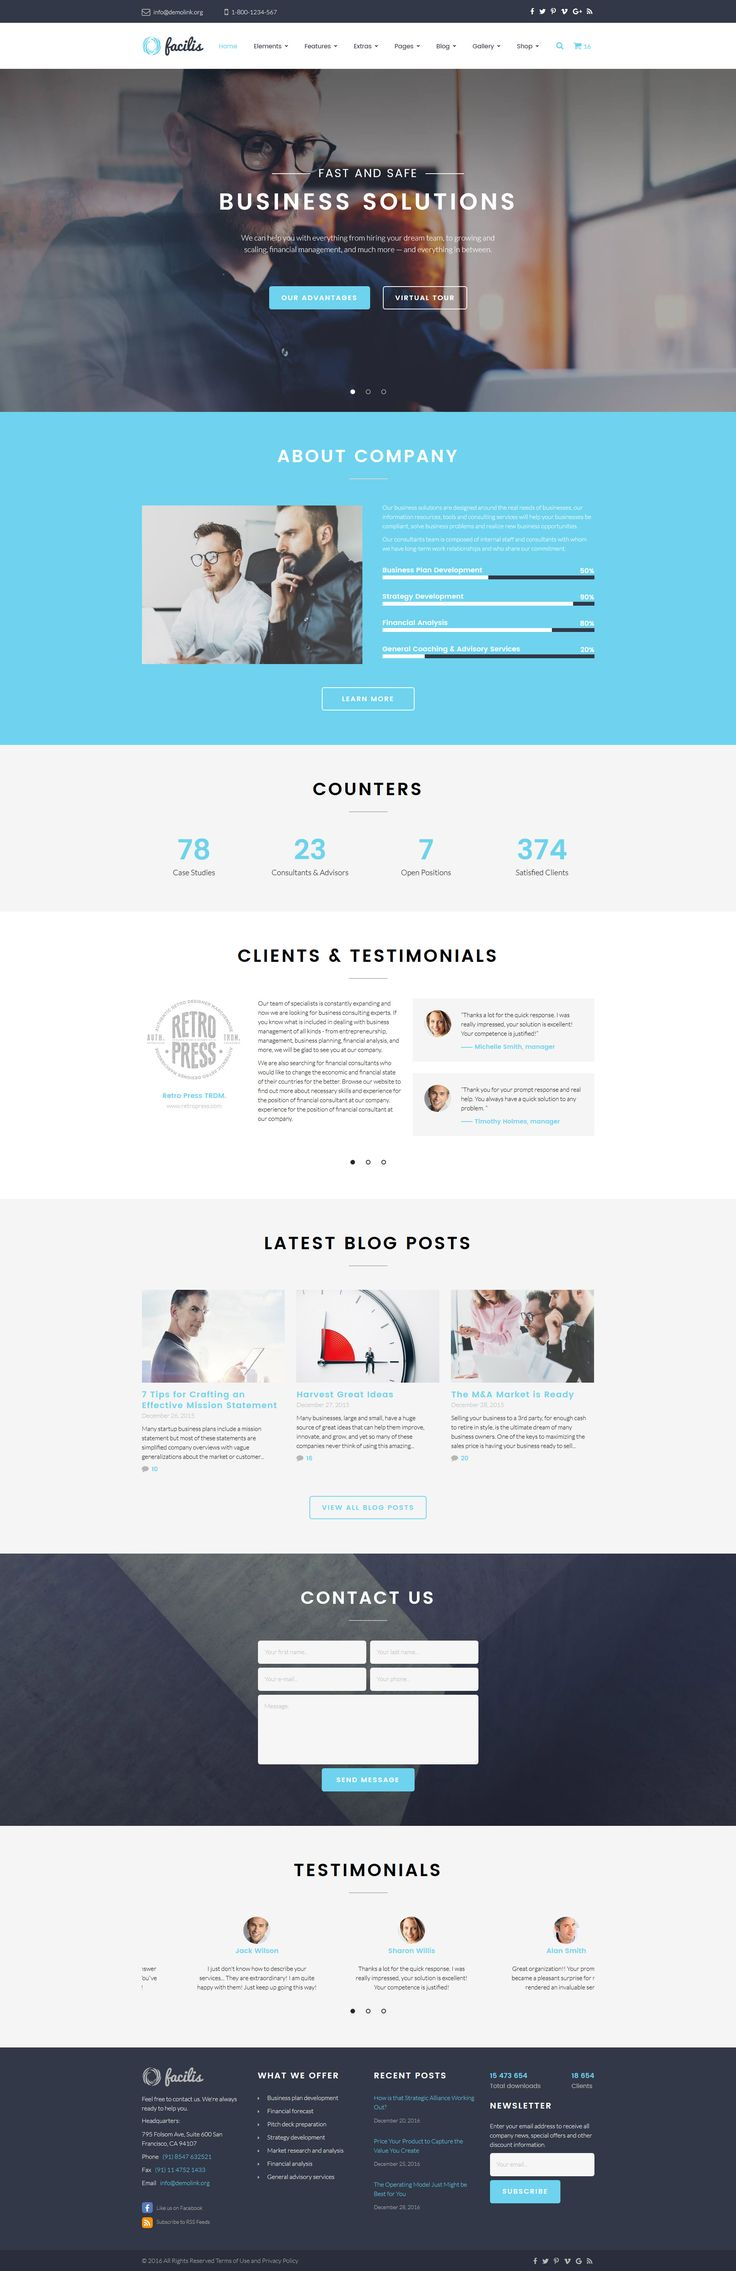 Facilis Website Template http://www.templatemonster.com/website-templates/facilis-website-template-58964.html